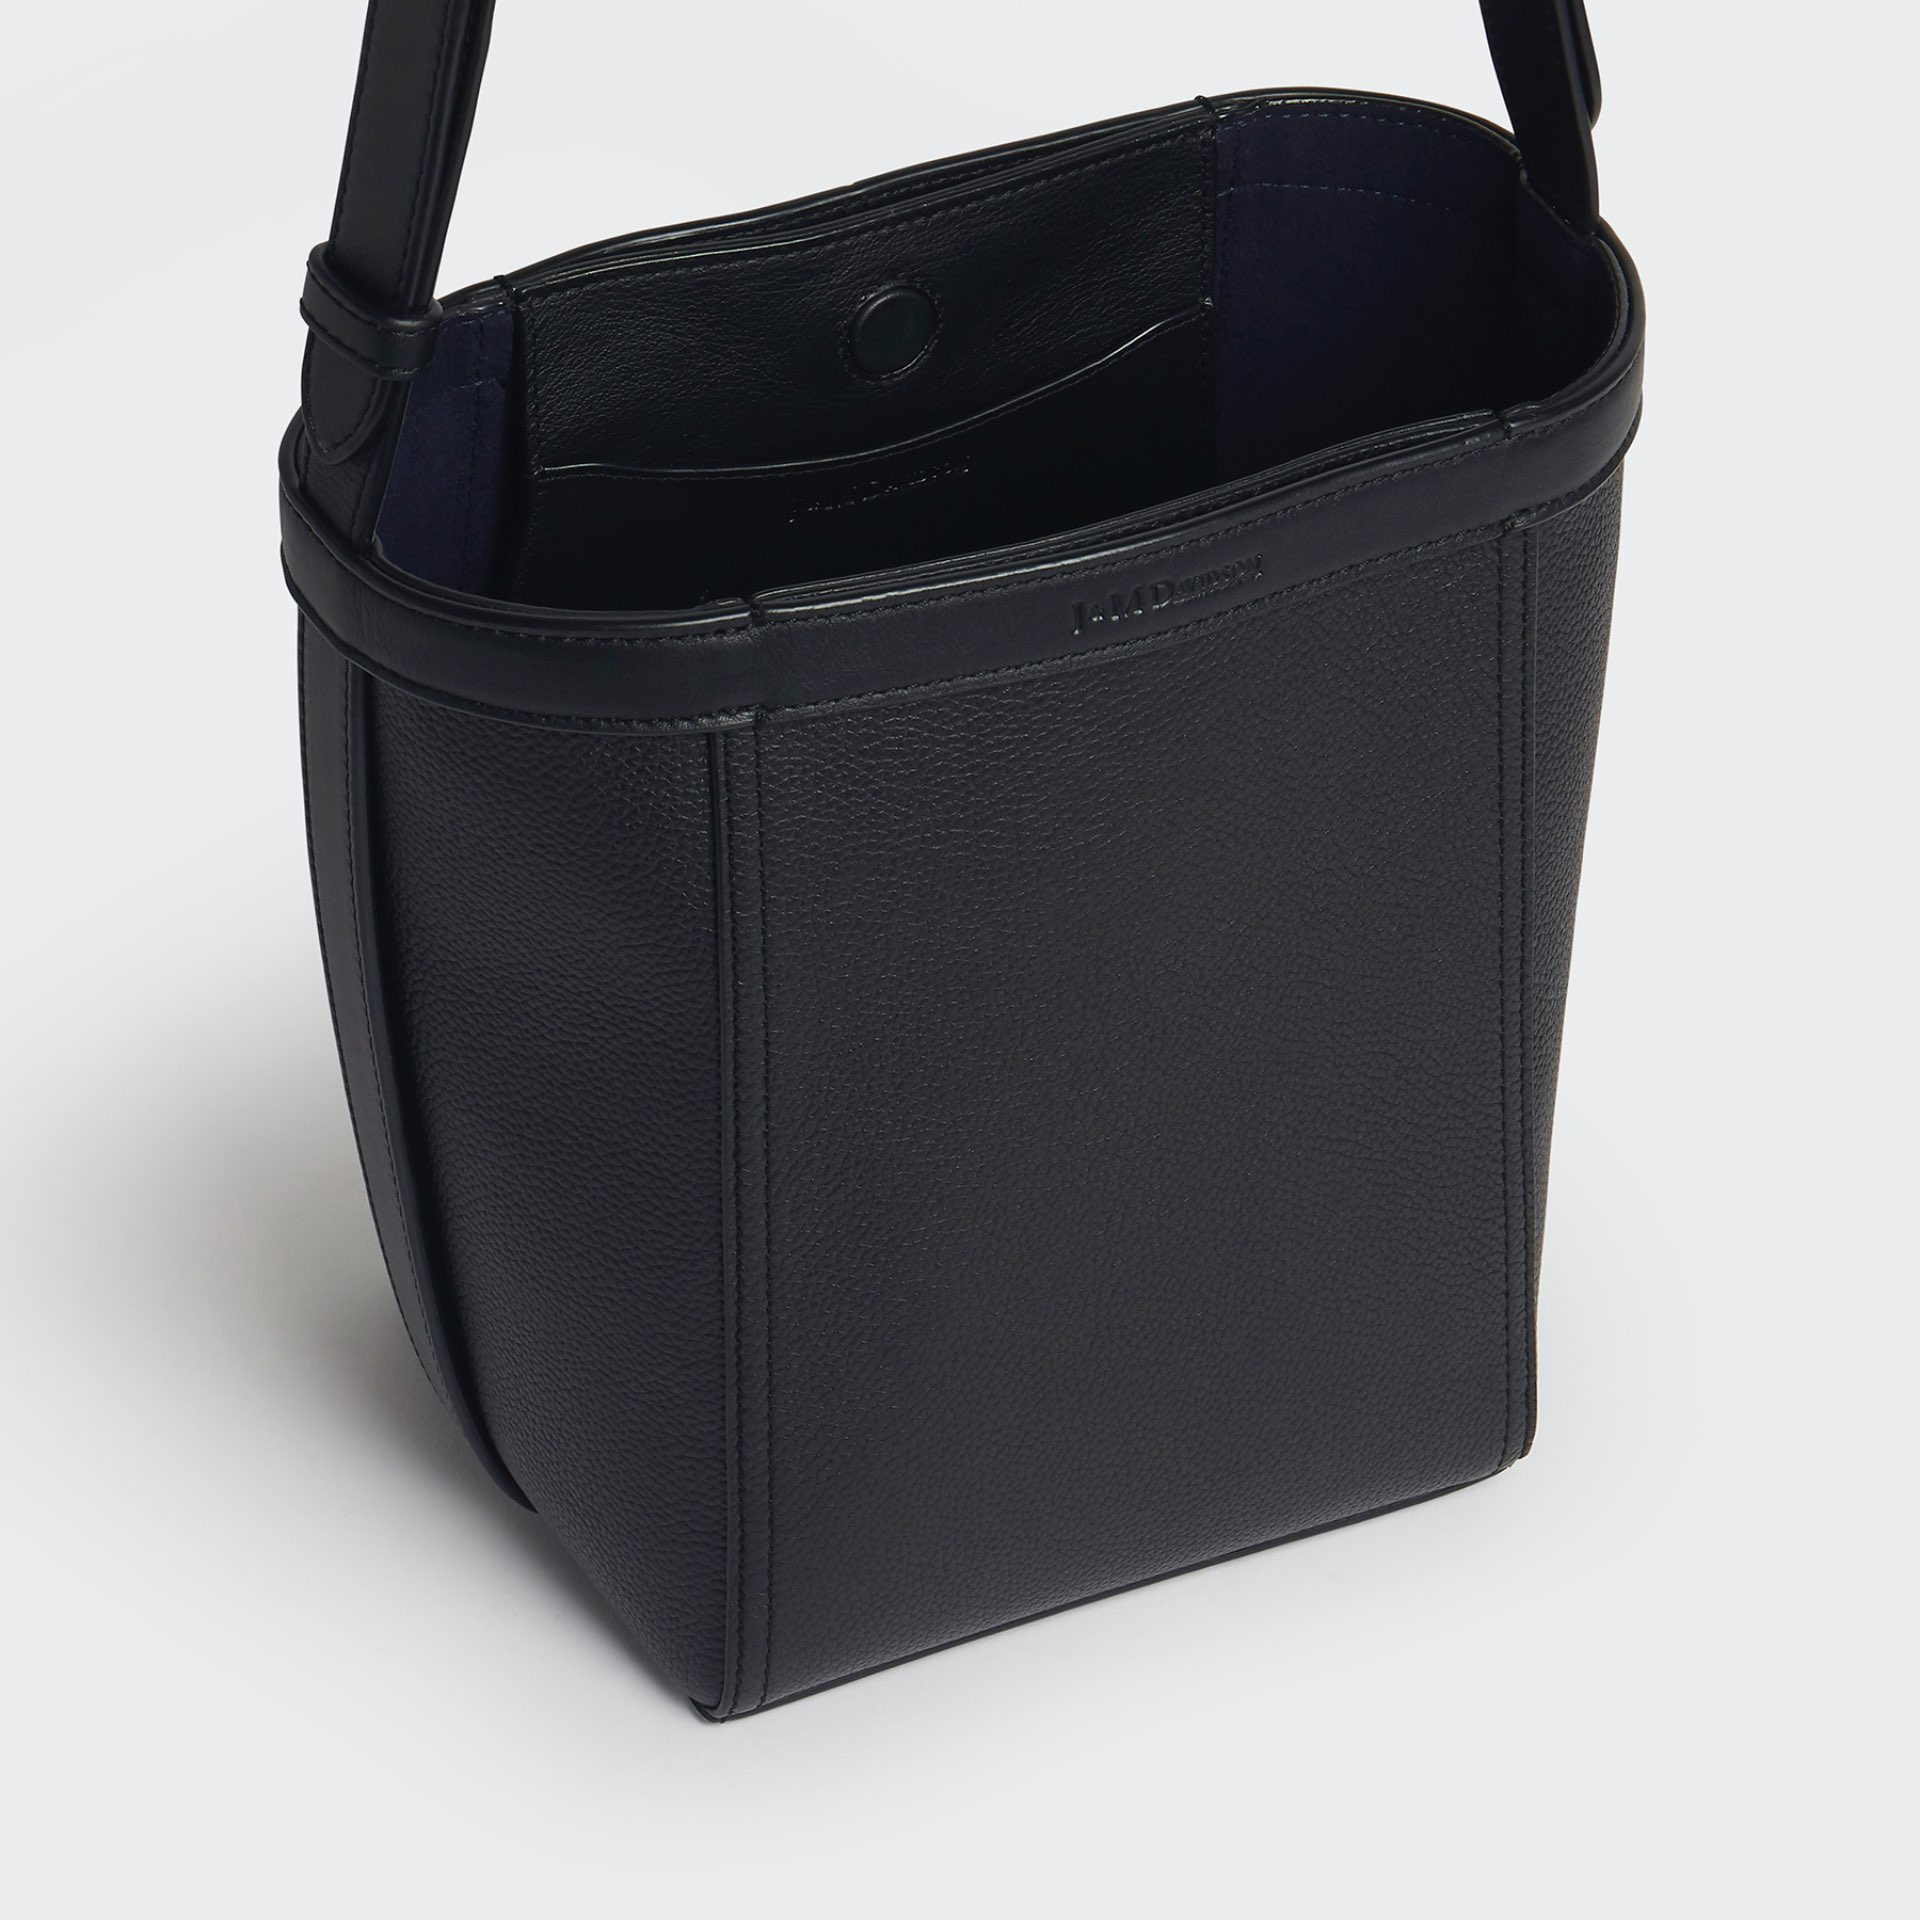 J&M Leather tote type bag